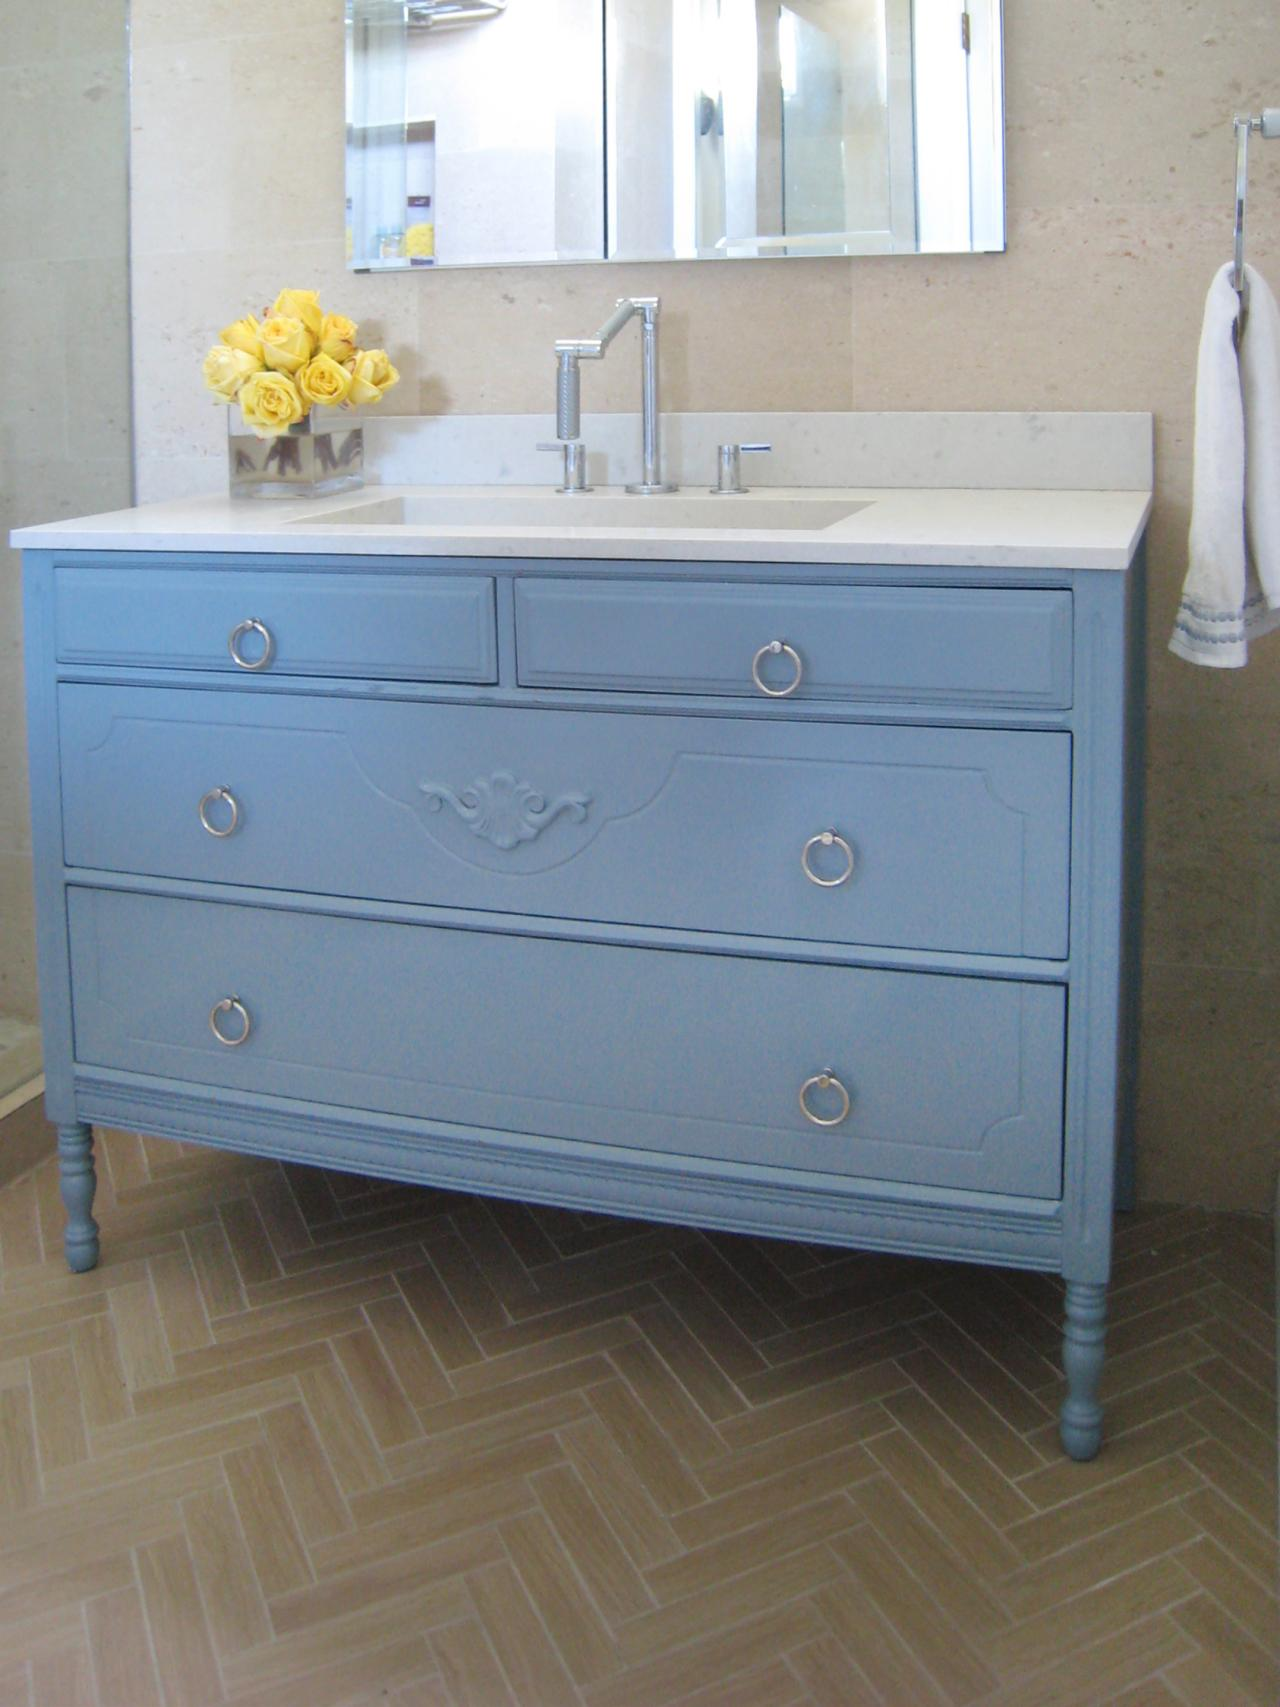 How To Turn A Cabinet Into A Bathroom Vanity HGTV - Blue bathroom vanity cabinet for bathroom decor ideas